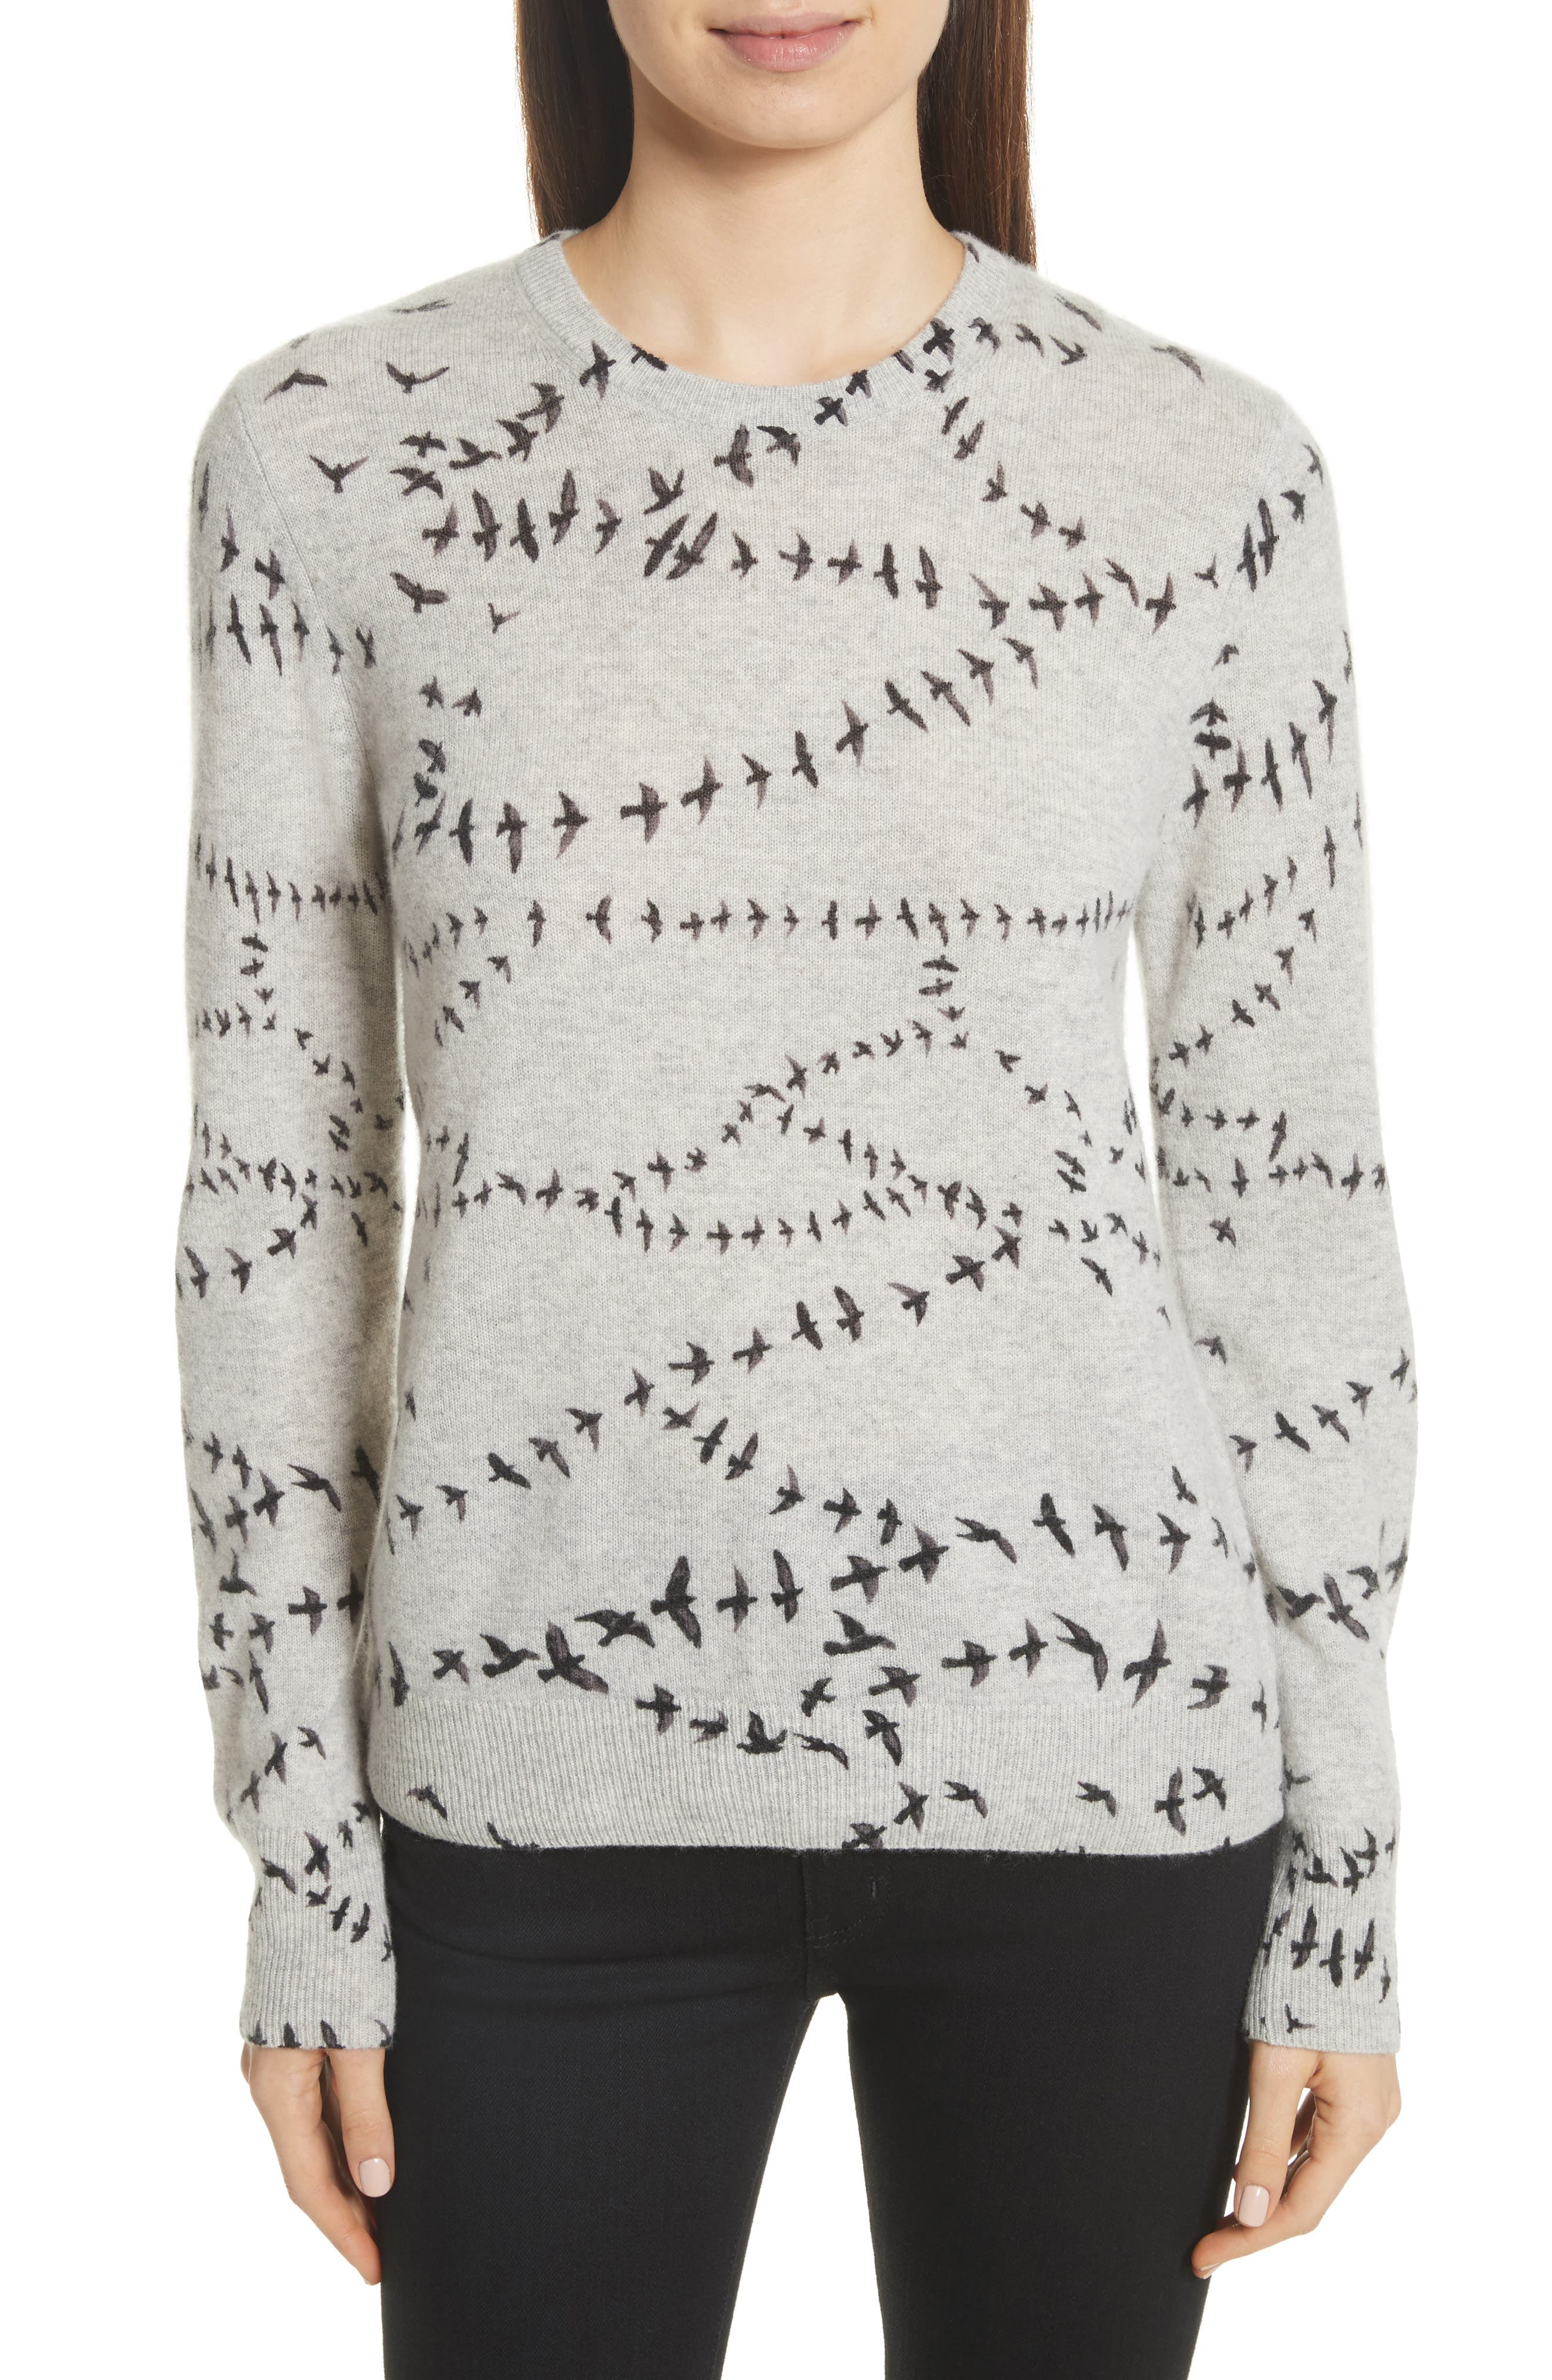 Shane Bird Print Cashmere Sweater,                             Main thumbnail 1, color,                             Light Heather Grey Multi